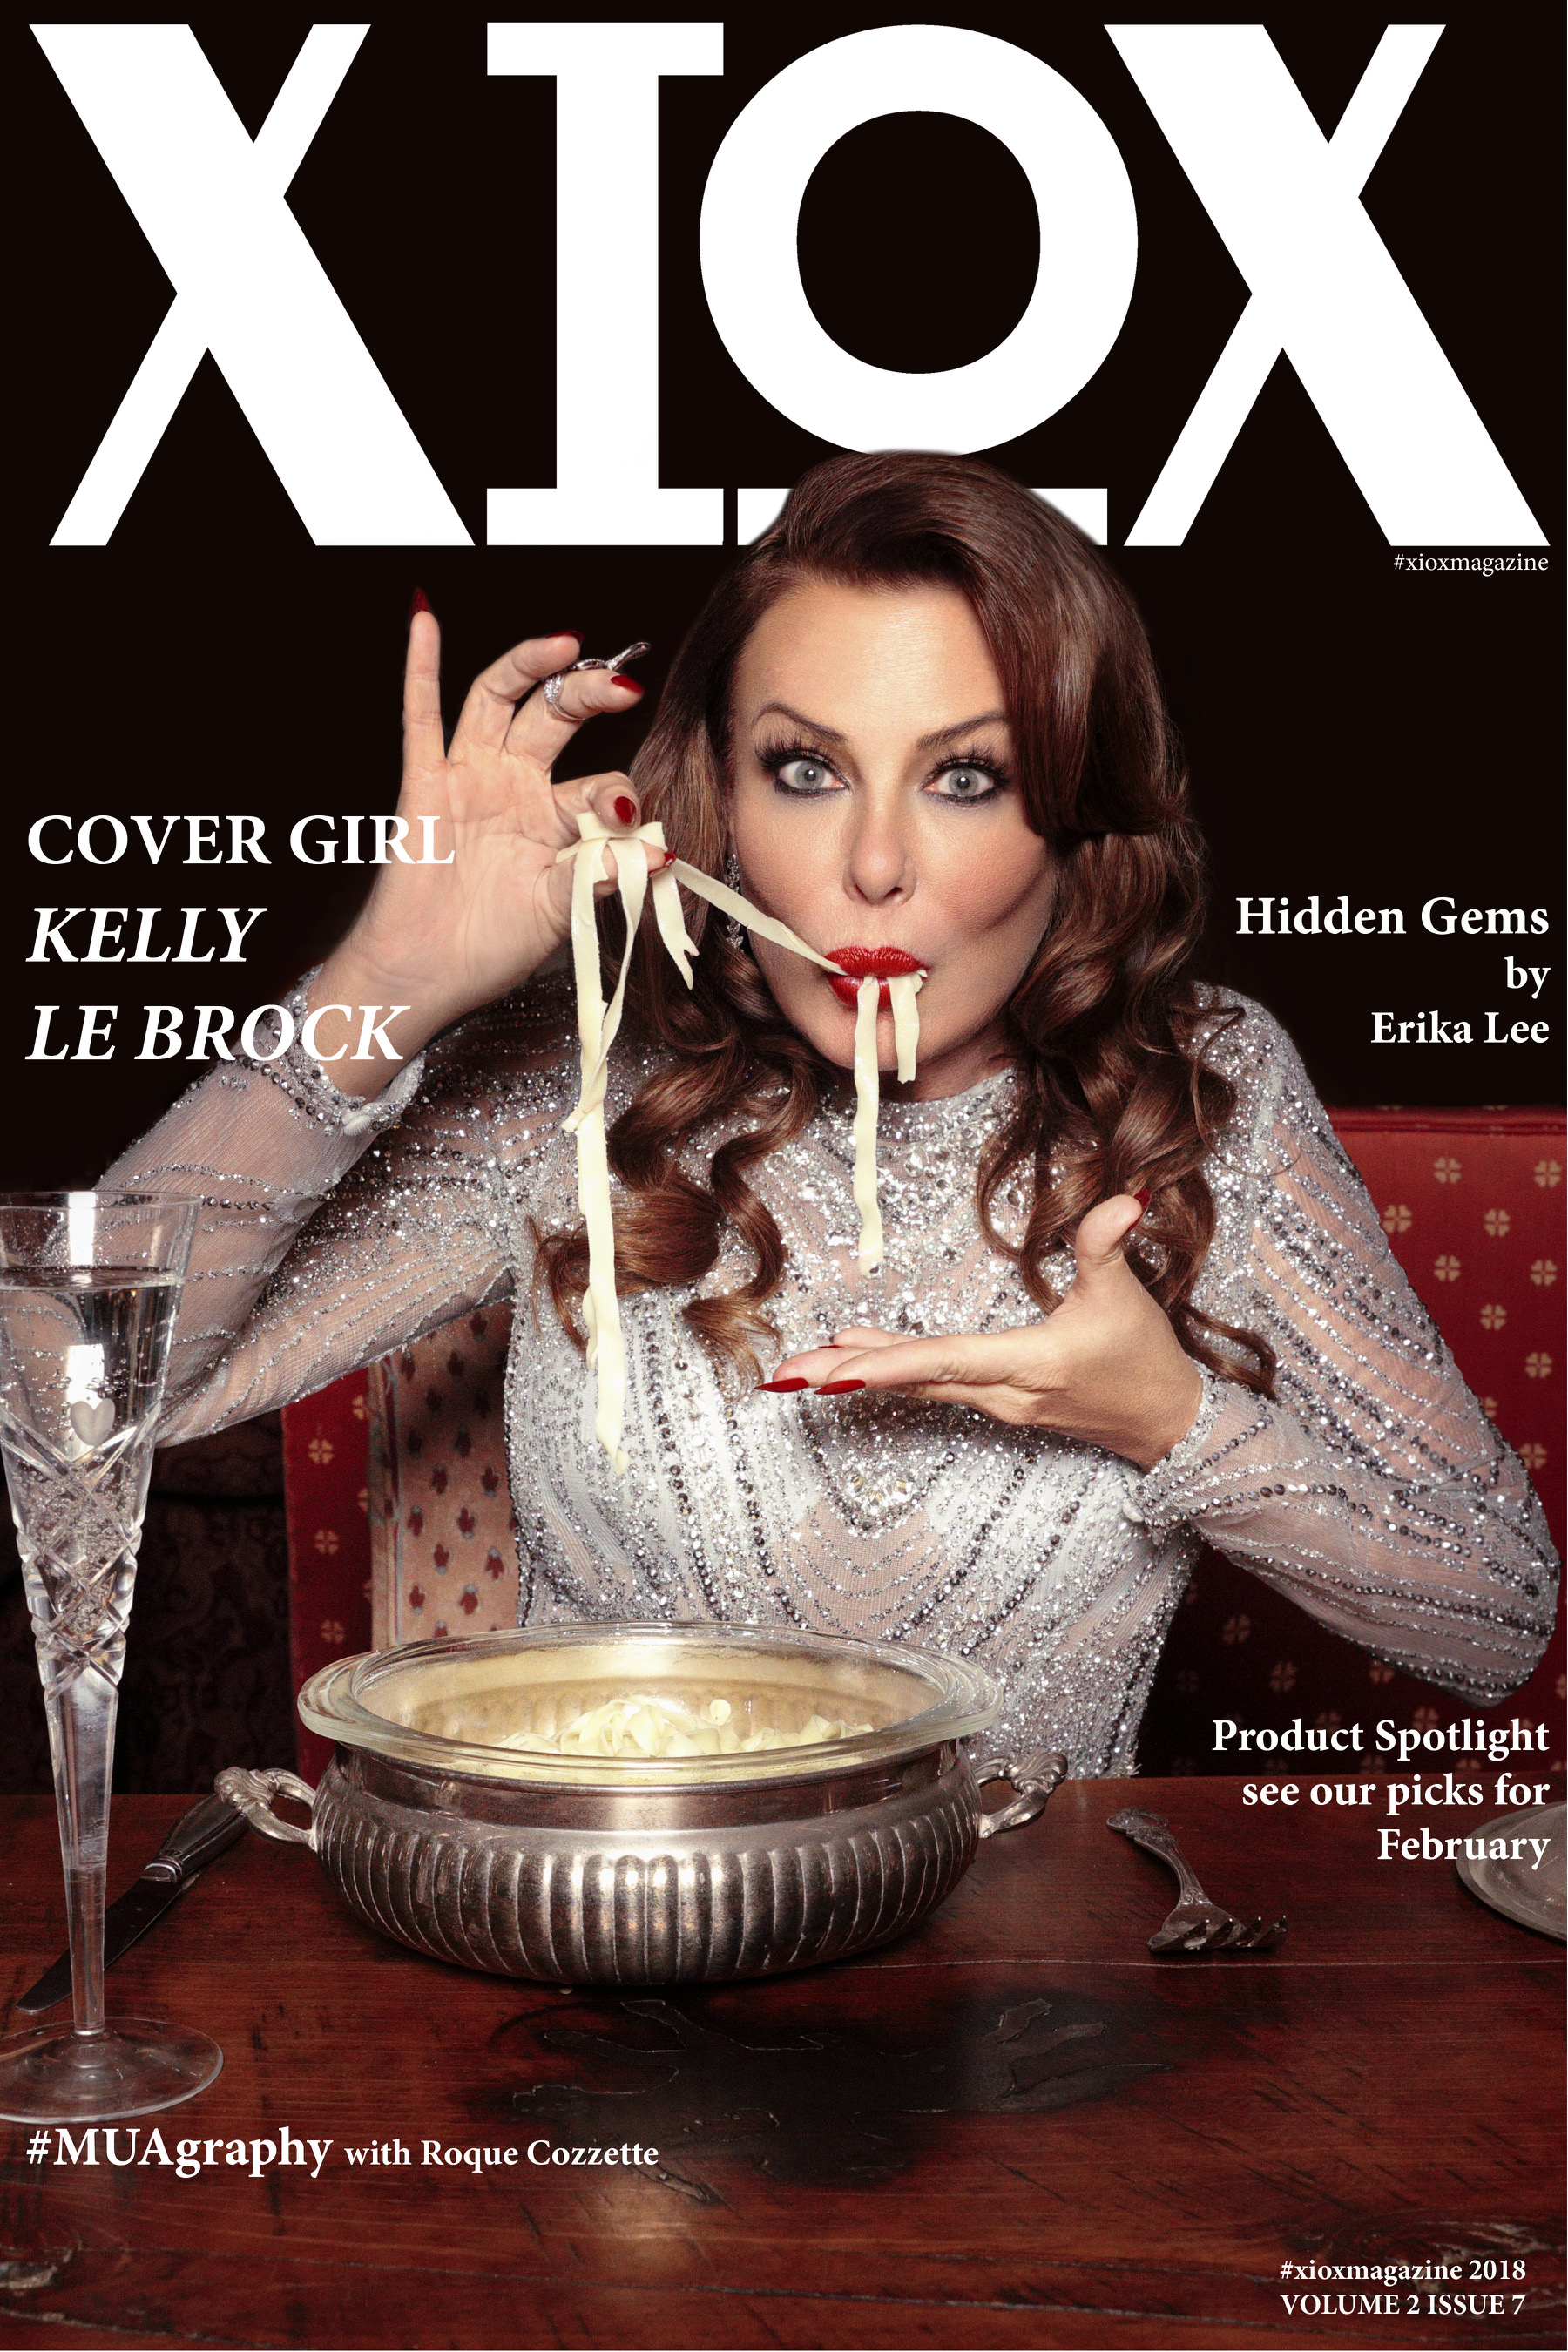 Kelly Le Brock Xiox